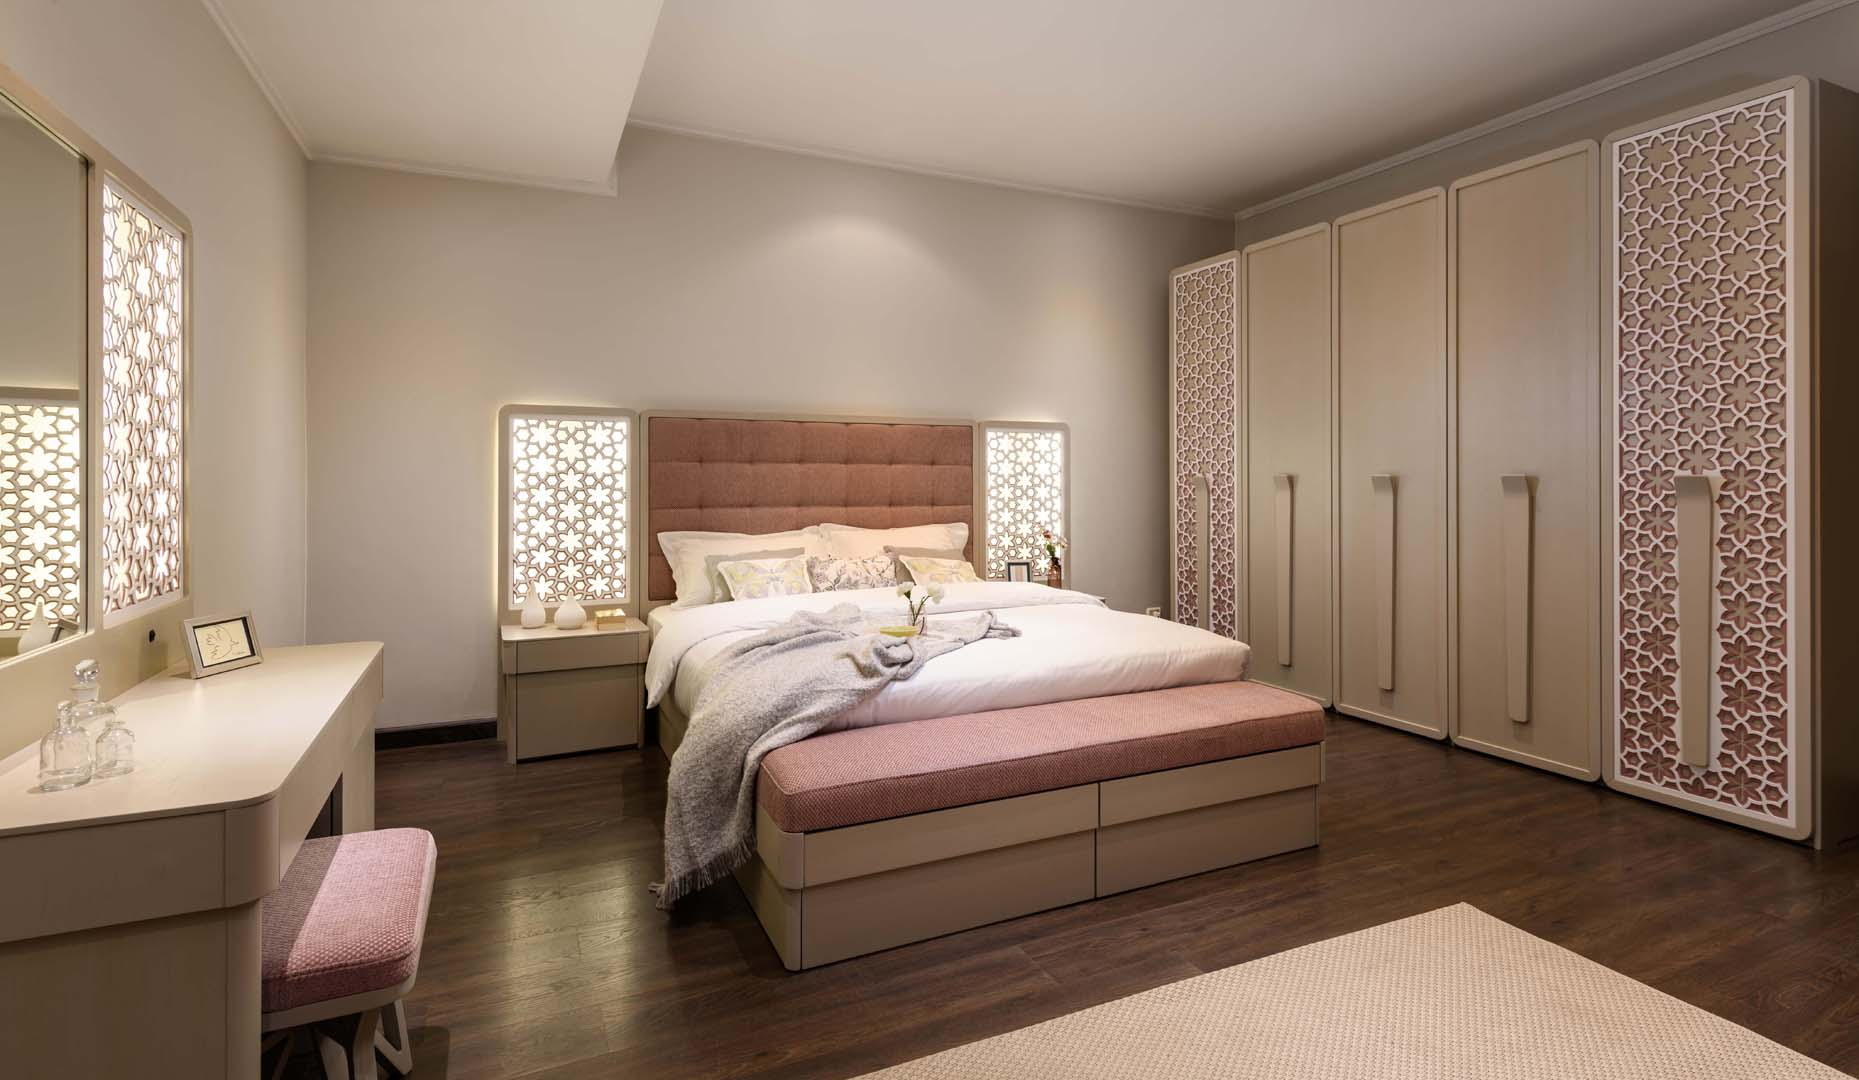 Andalusia master bed 180*240